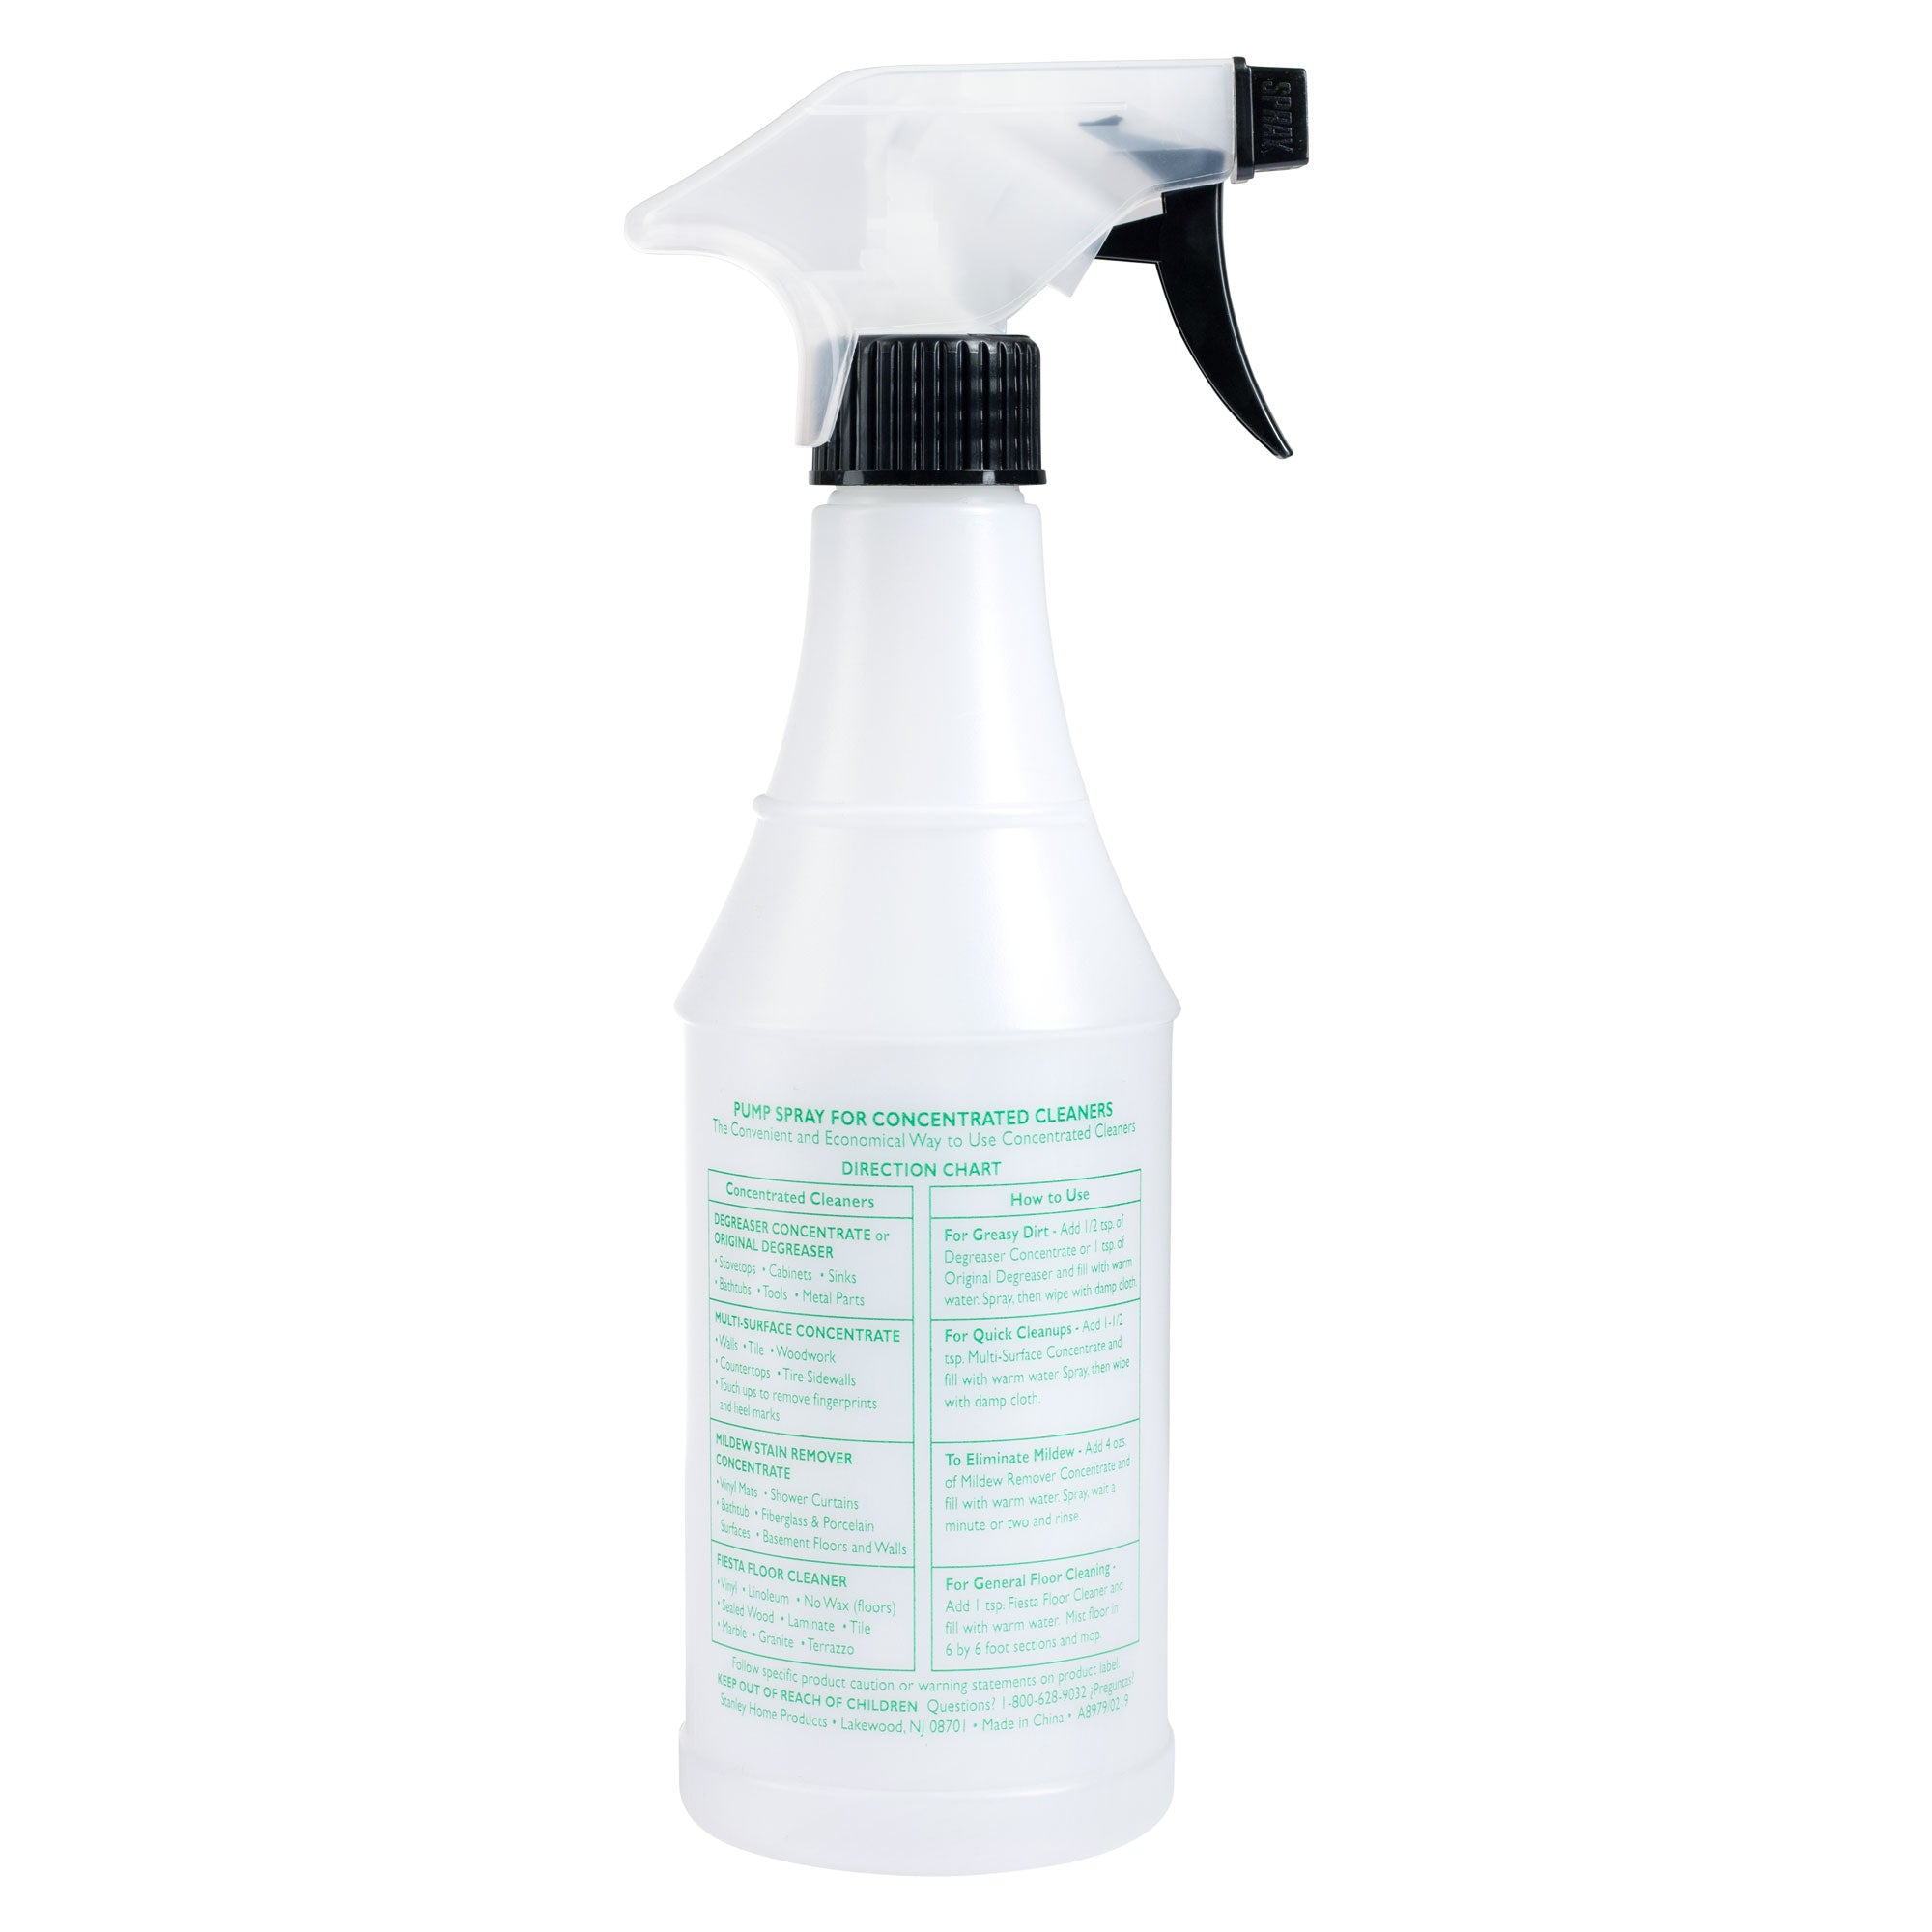 Pump Spray Refillable Bottle for Concentrated Cleaners